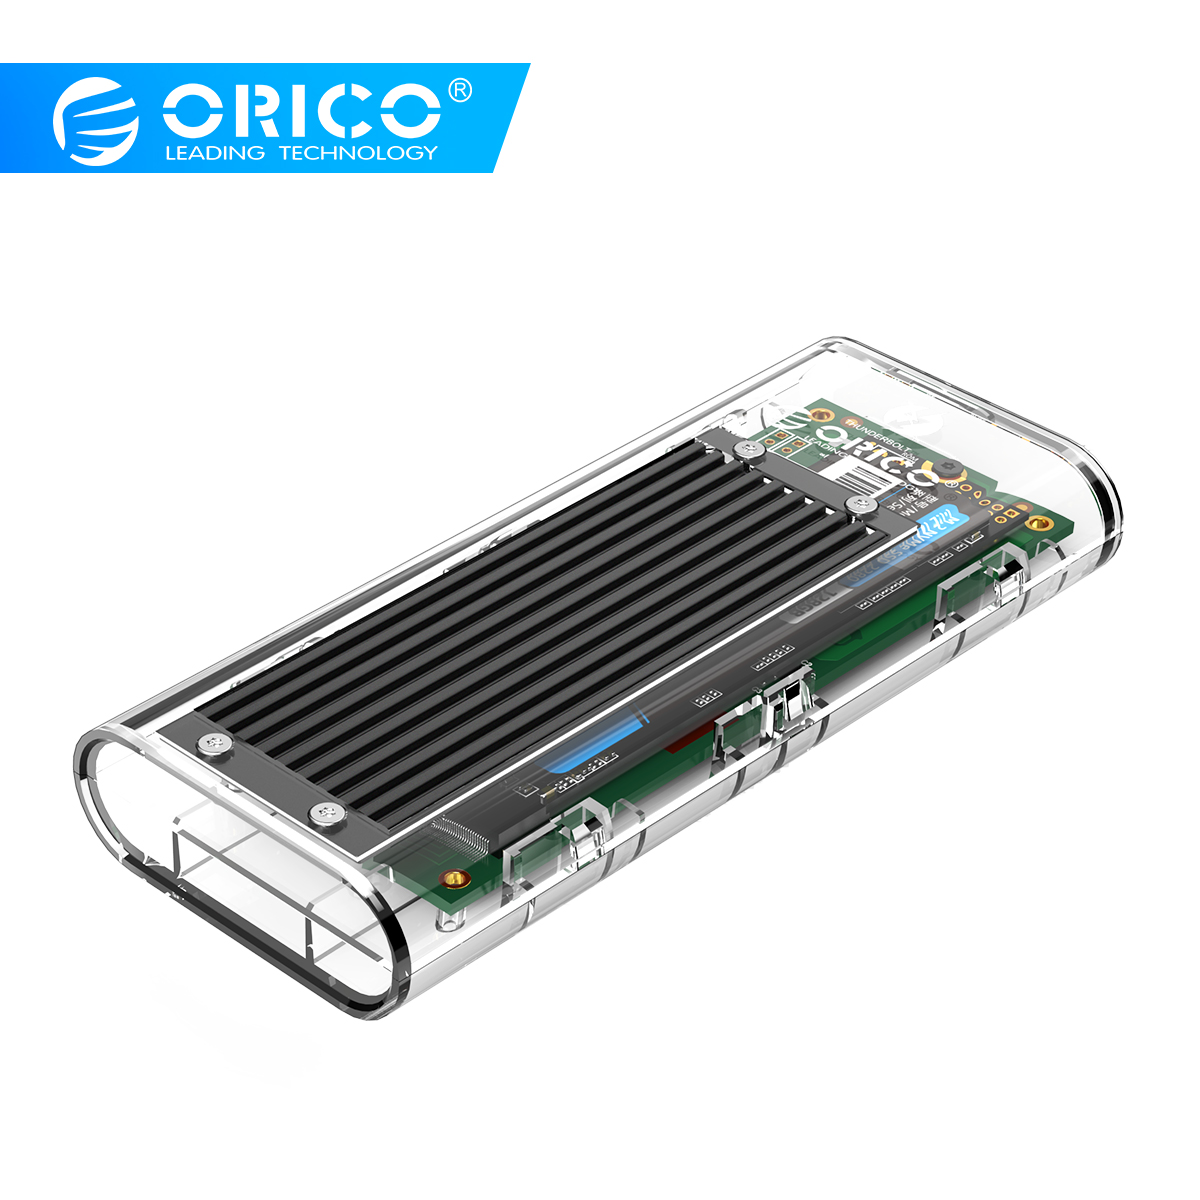 ORICO Transparent Thunderbolt 3 SSD Case 40Gbps M.2 NVME SSD Enclosure 2TB  USB C With 40Gbps C To C Cable For Mac Windows